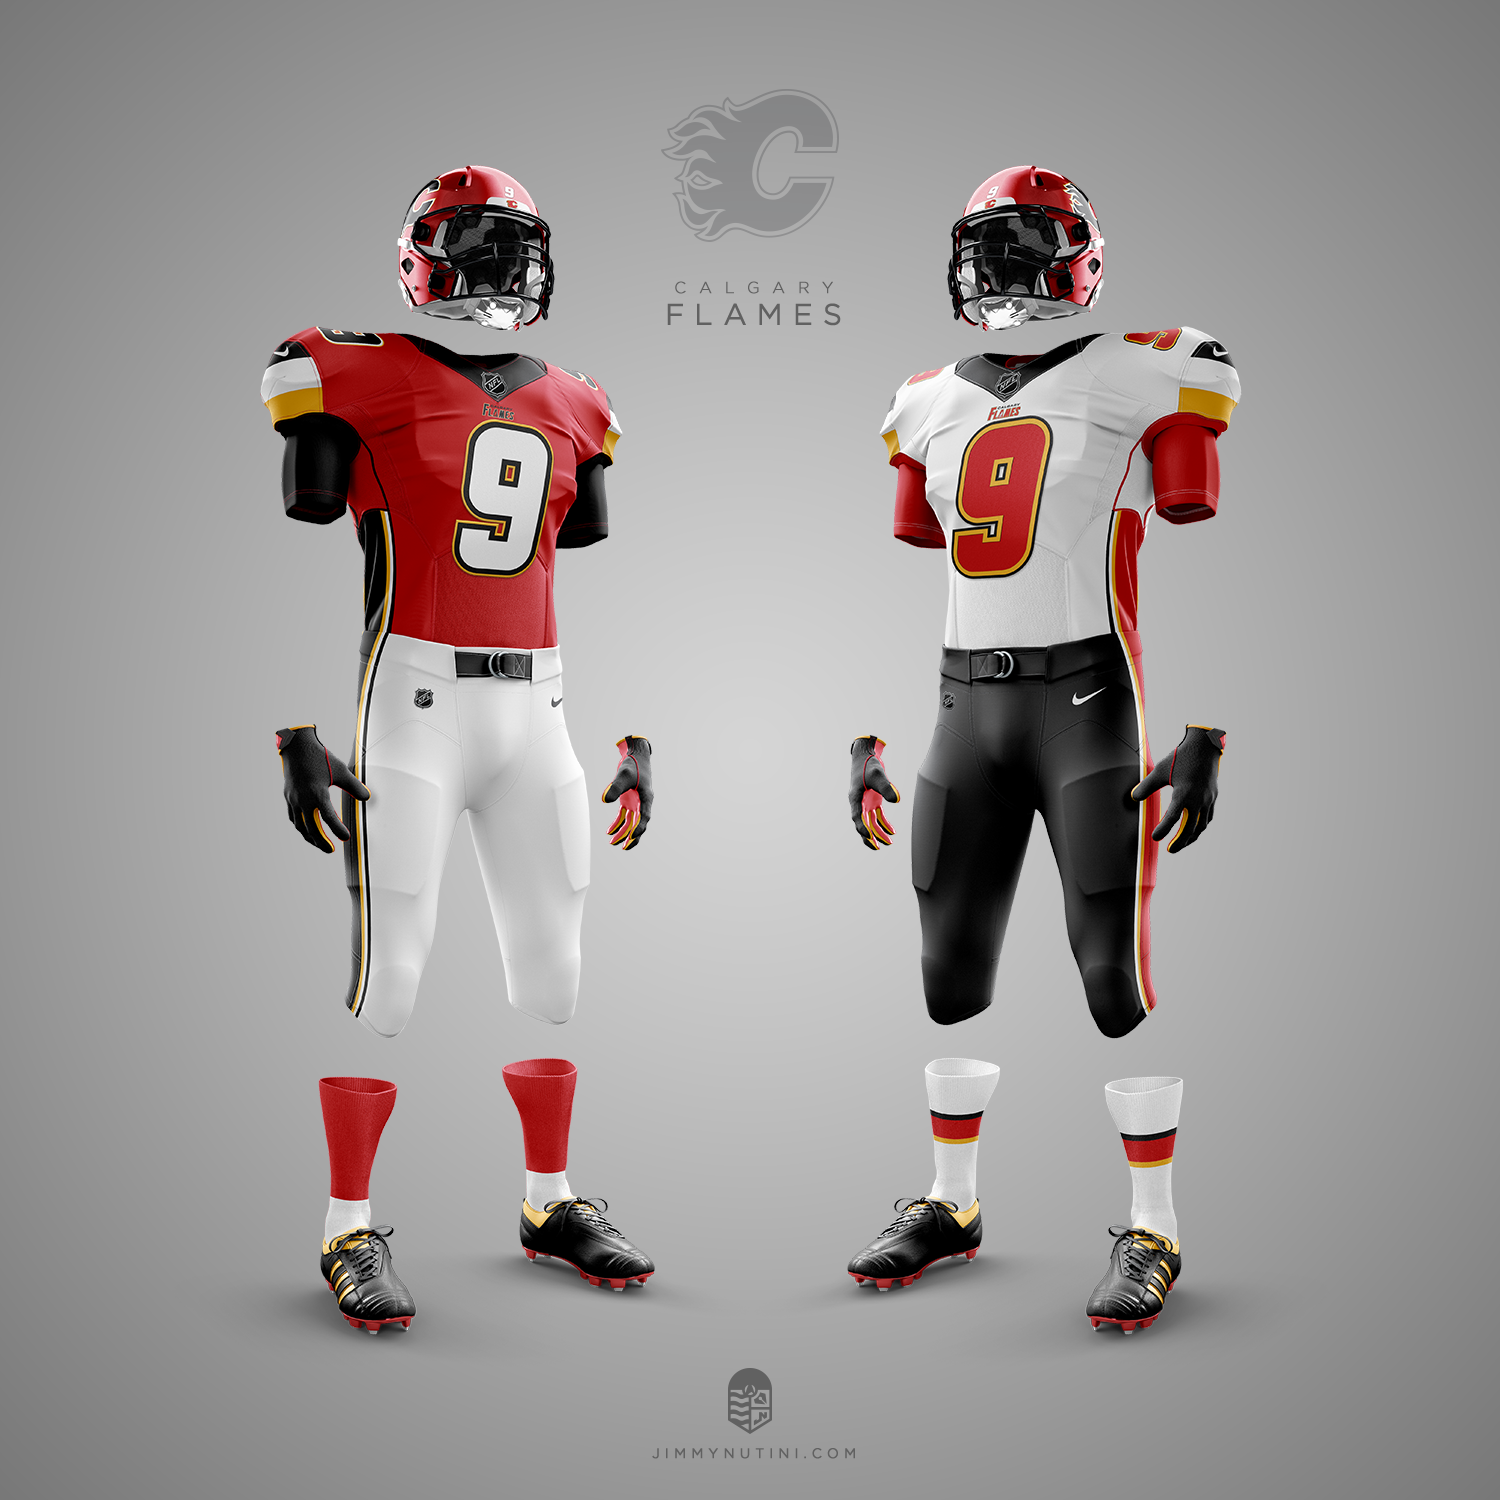 separation shoes 762a4 922c3 These NHL team football concept uniforms are incredibly well ...